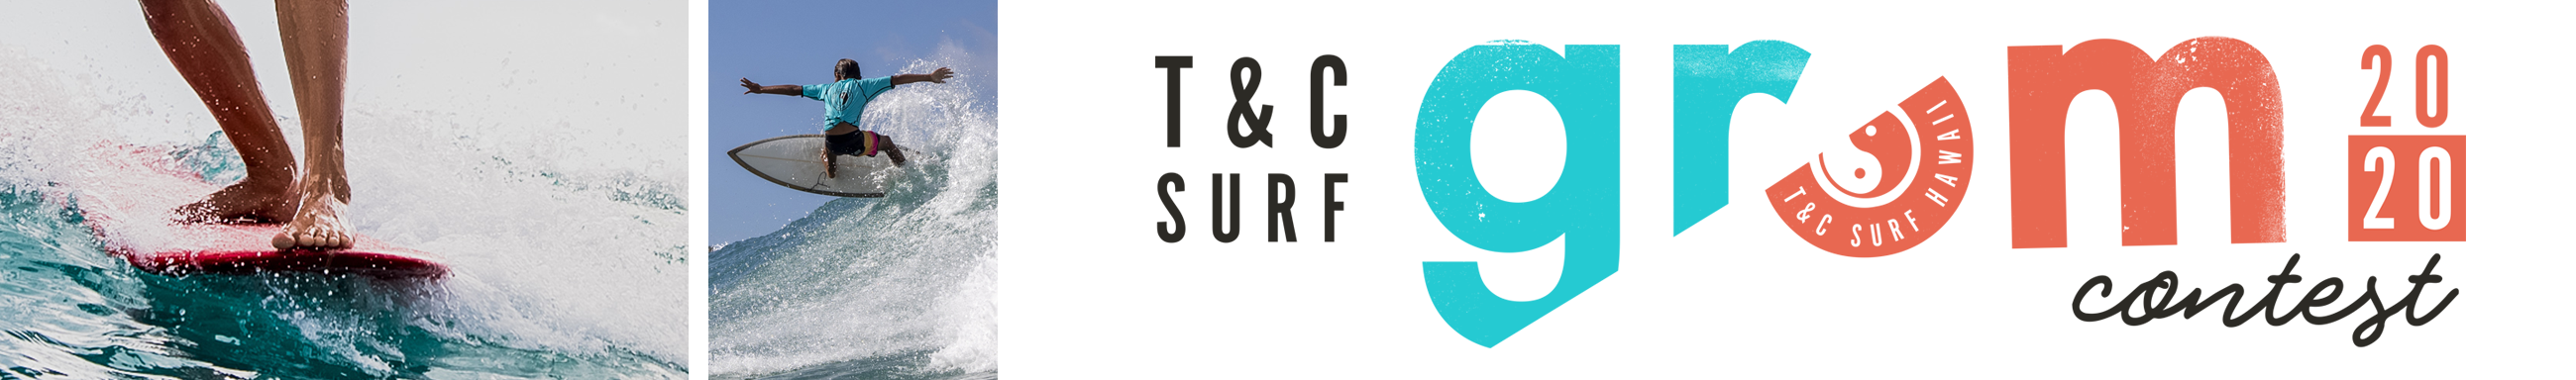 T&C Grom contest logo title text